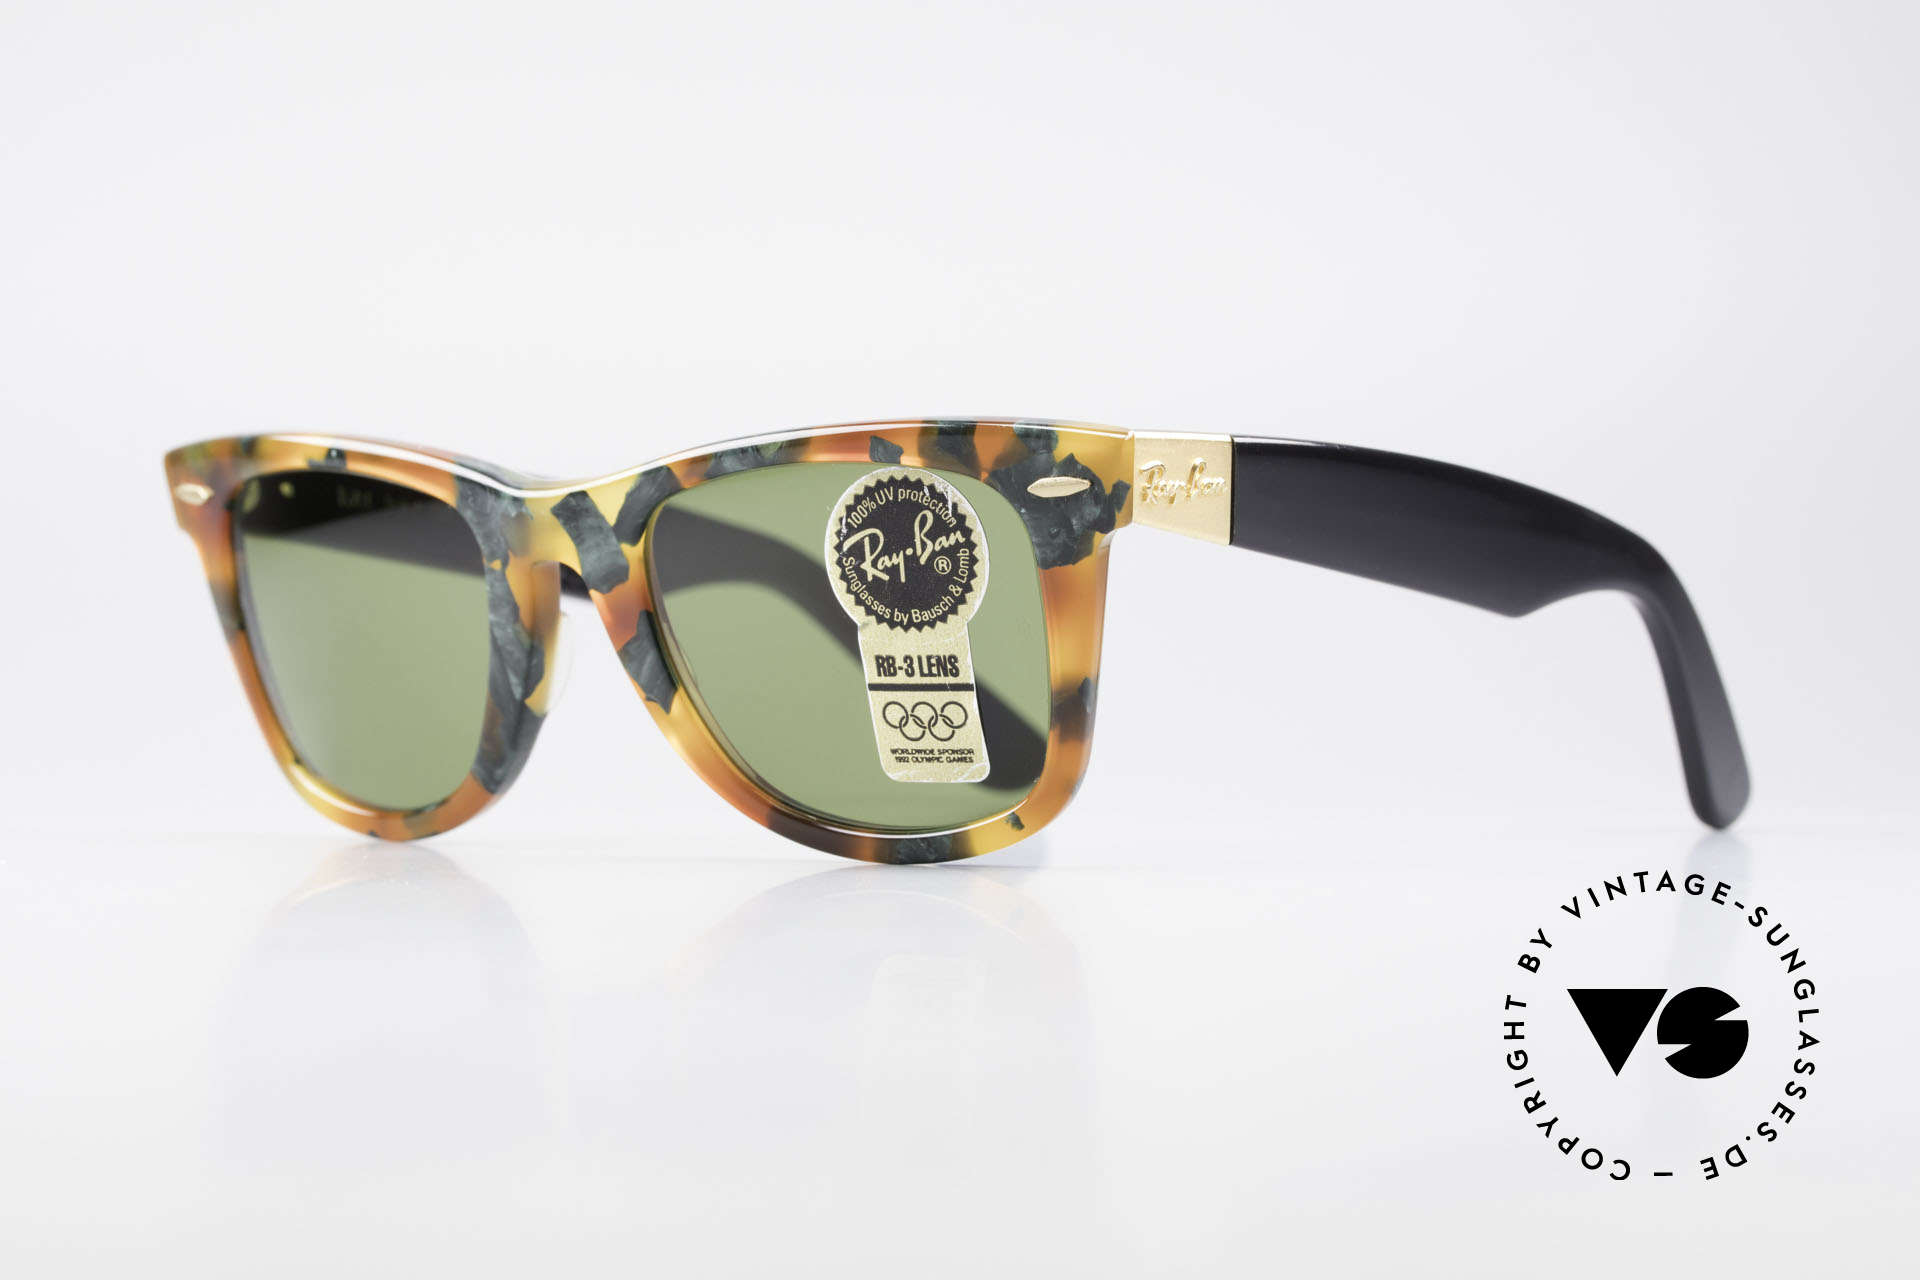 Ray Ban Wayfarer I Limited Deluxe Edition USA, often copied, never matched; truly vintage by B&L, Made for Men and Women